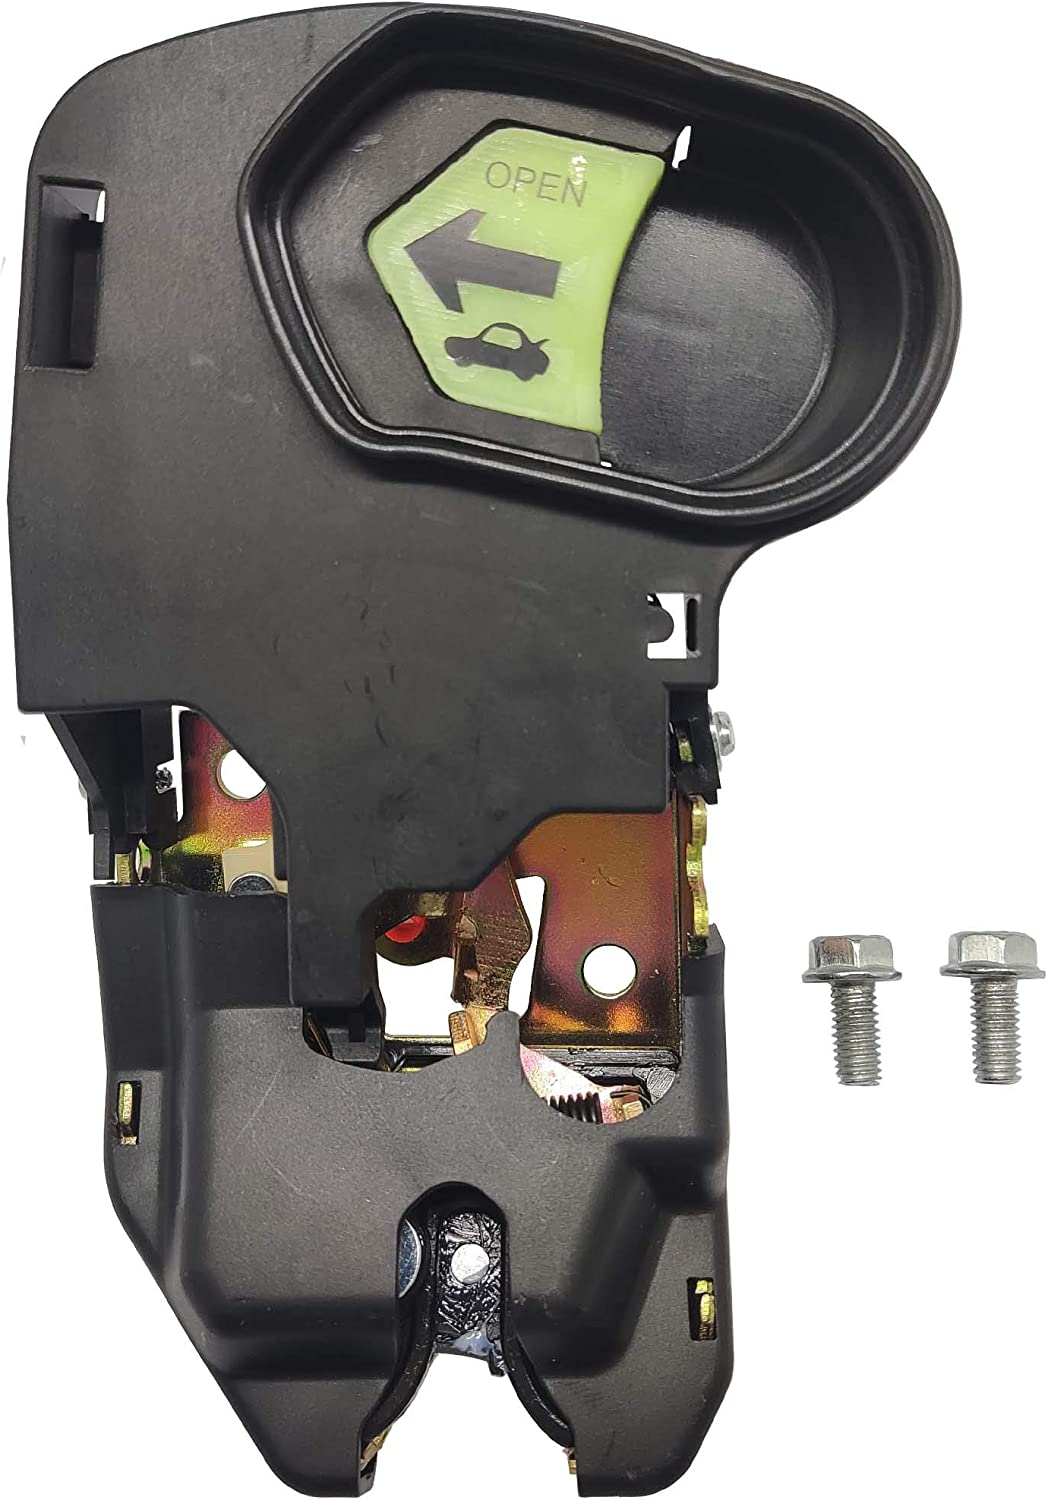 OKAY MOTOR Trunk Latch Lock Lid Bombing free shipping 2001-2005 Assembly Ho for Max 68% OFF Handle